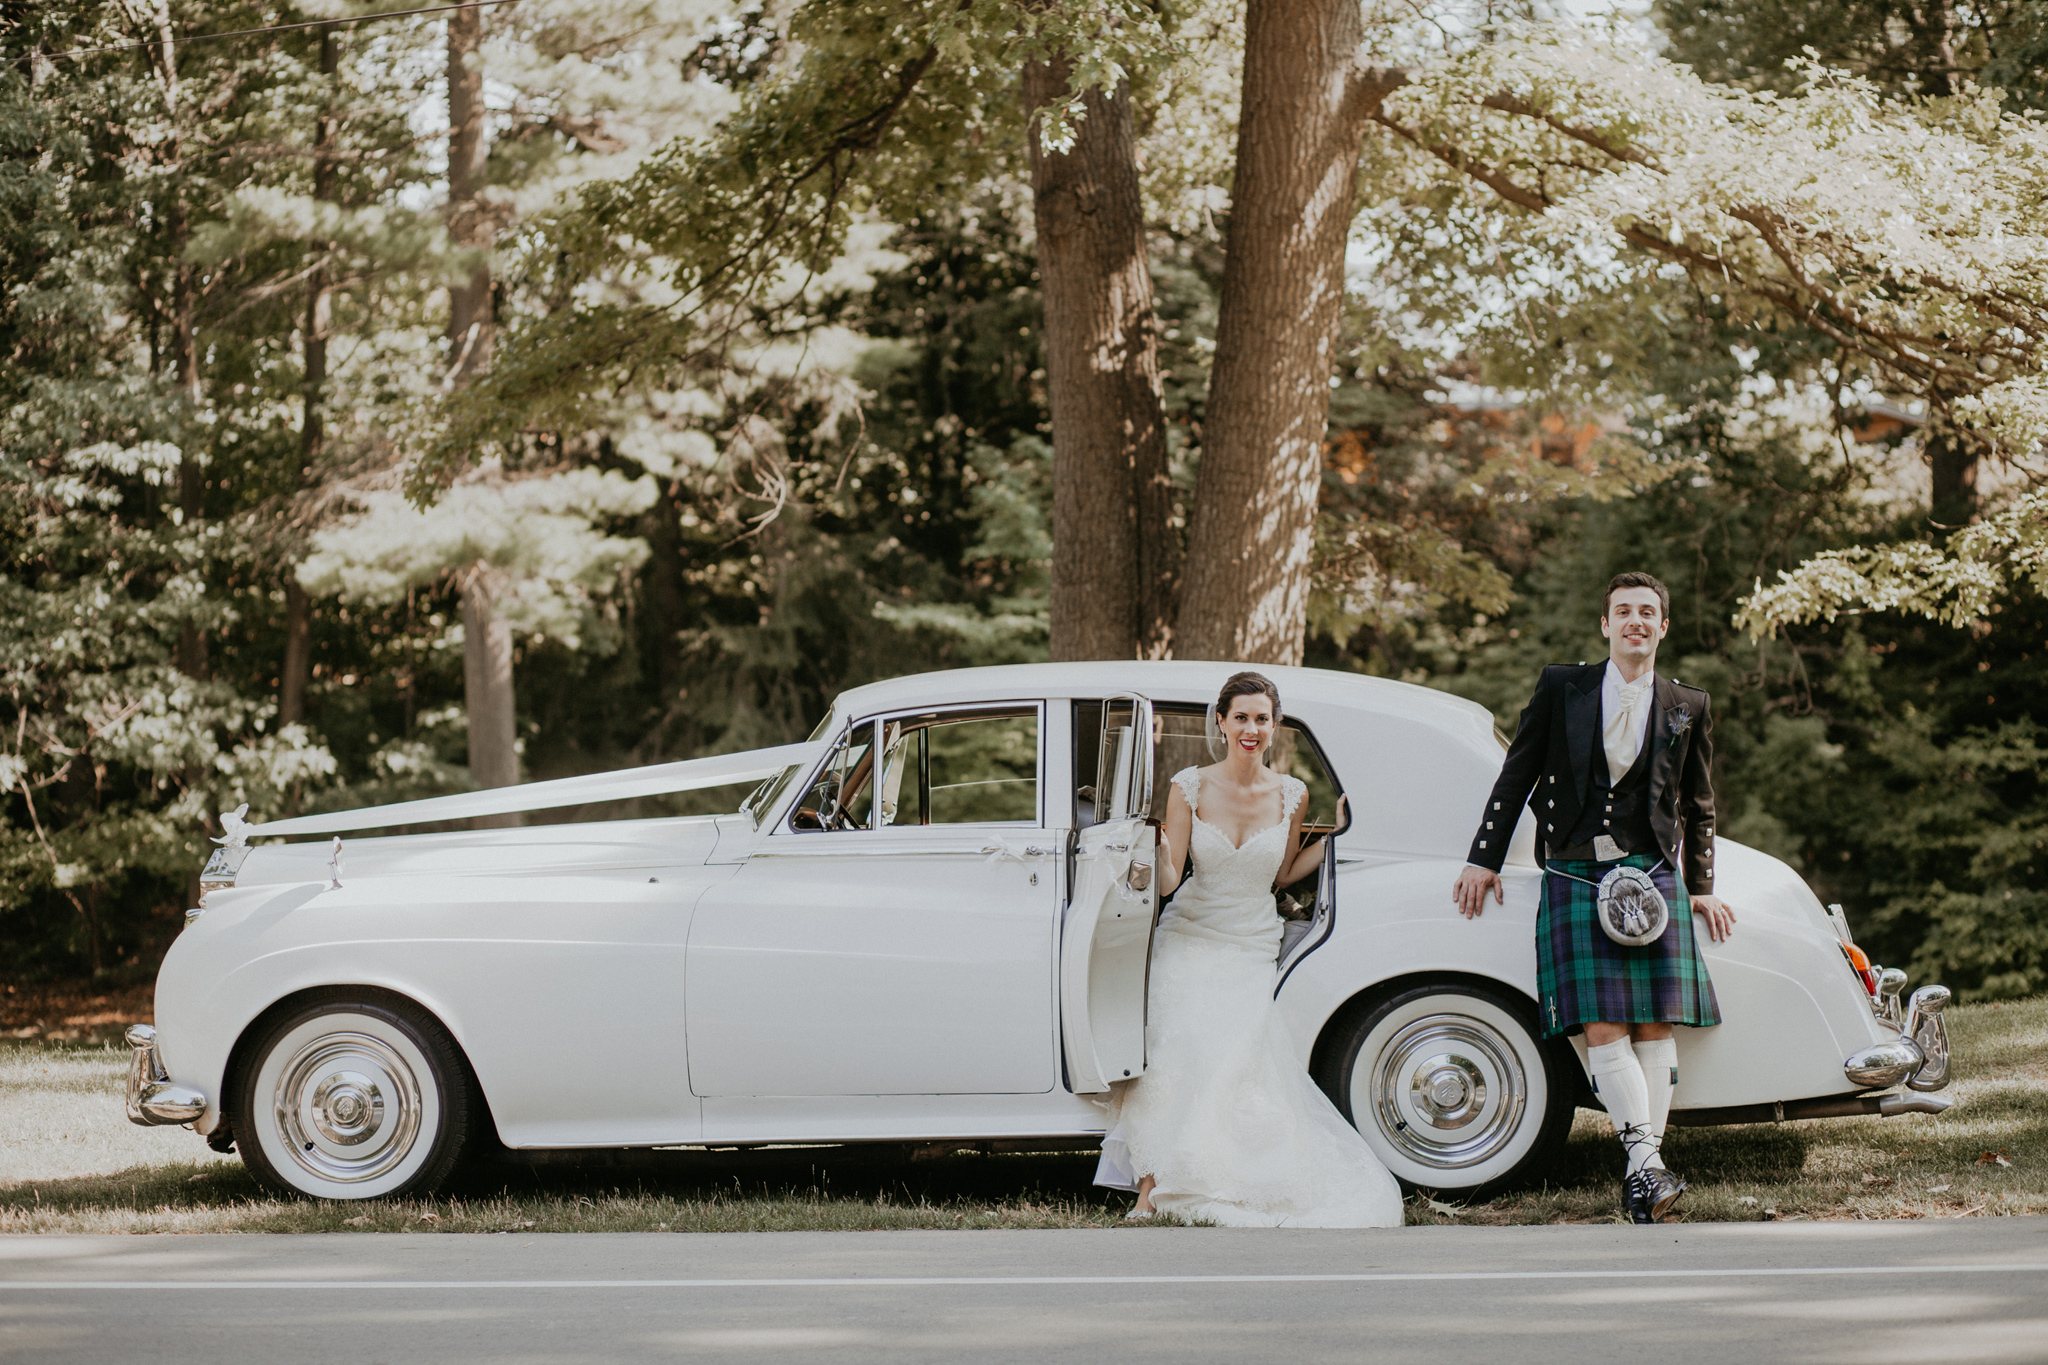 Portrait of bride and groom with Rolls Royce car